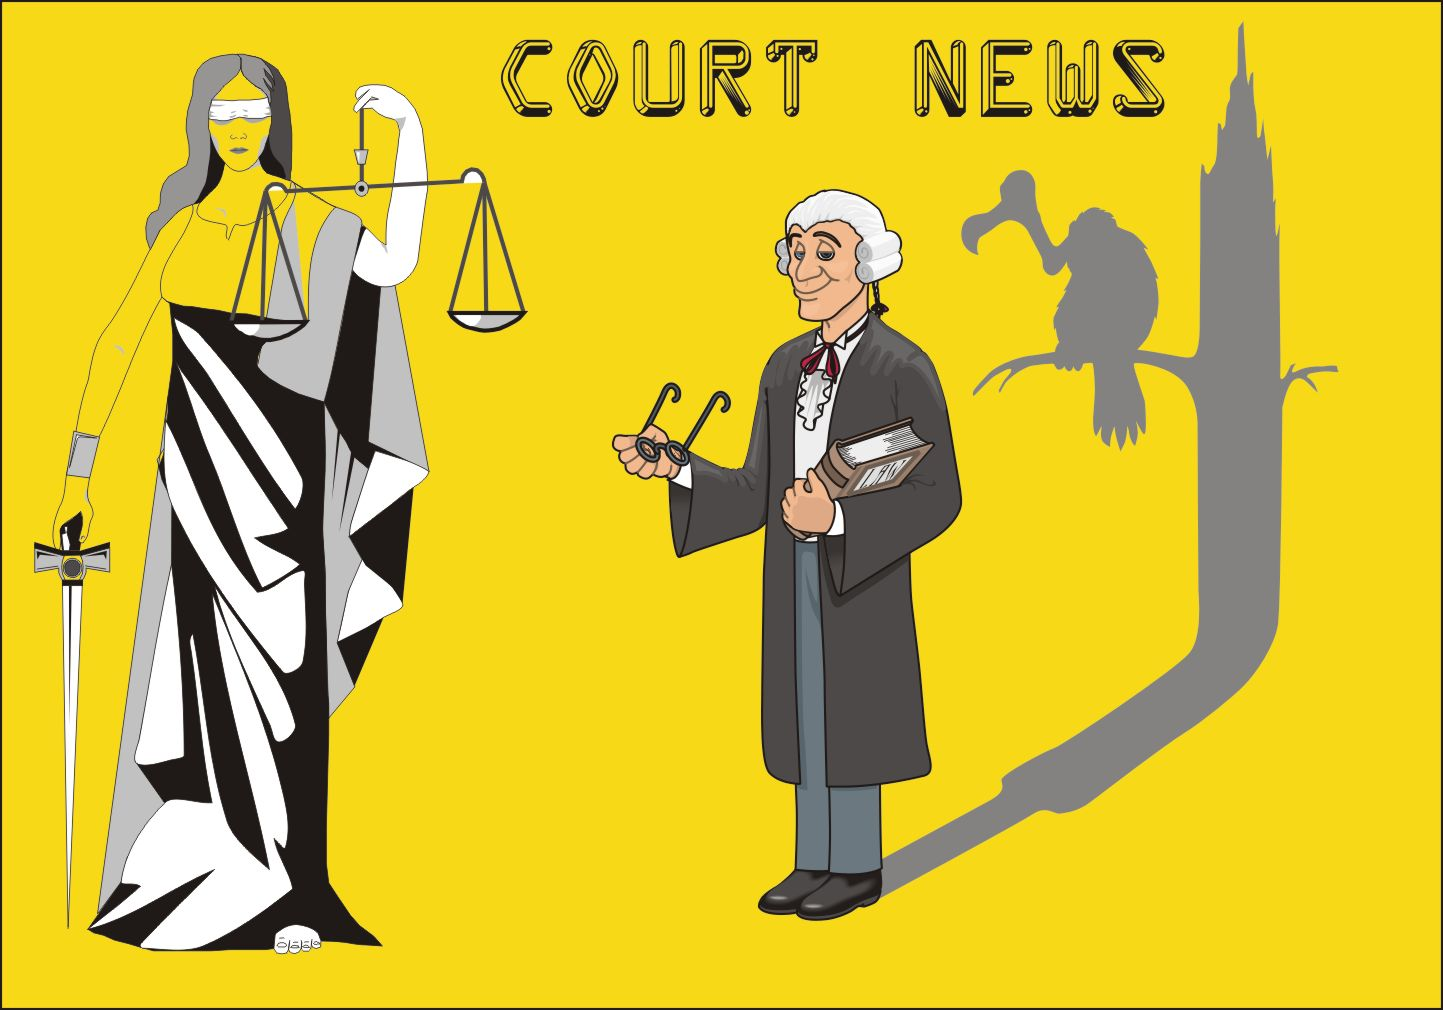 COURT NEWS: Maryland Attorneys Sanctioned & Disbarred in 2020